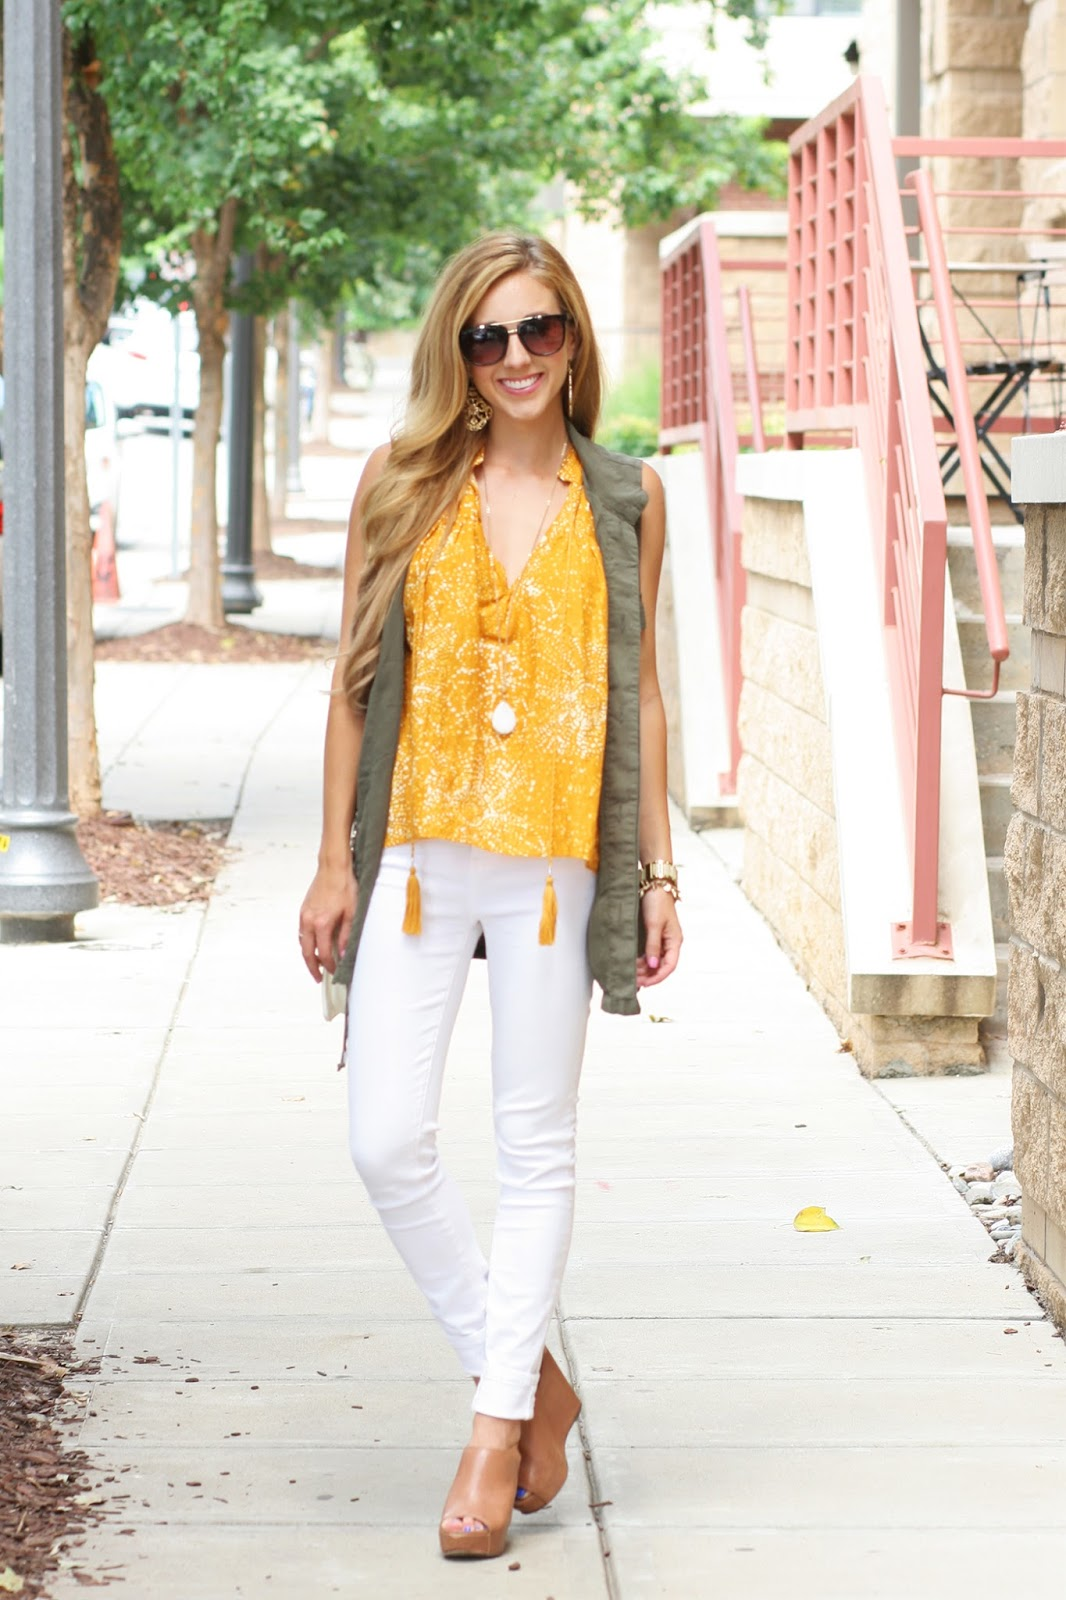 Sara-kate-styling-Steadman-raleigh-nc-fashion-blogger-frill-shark-tank-